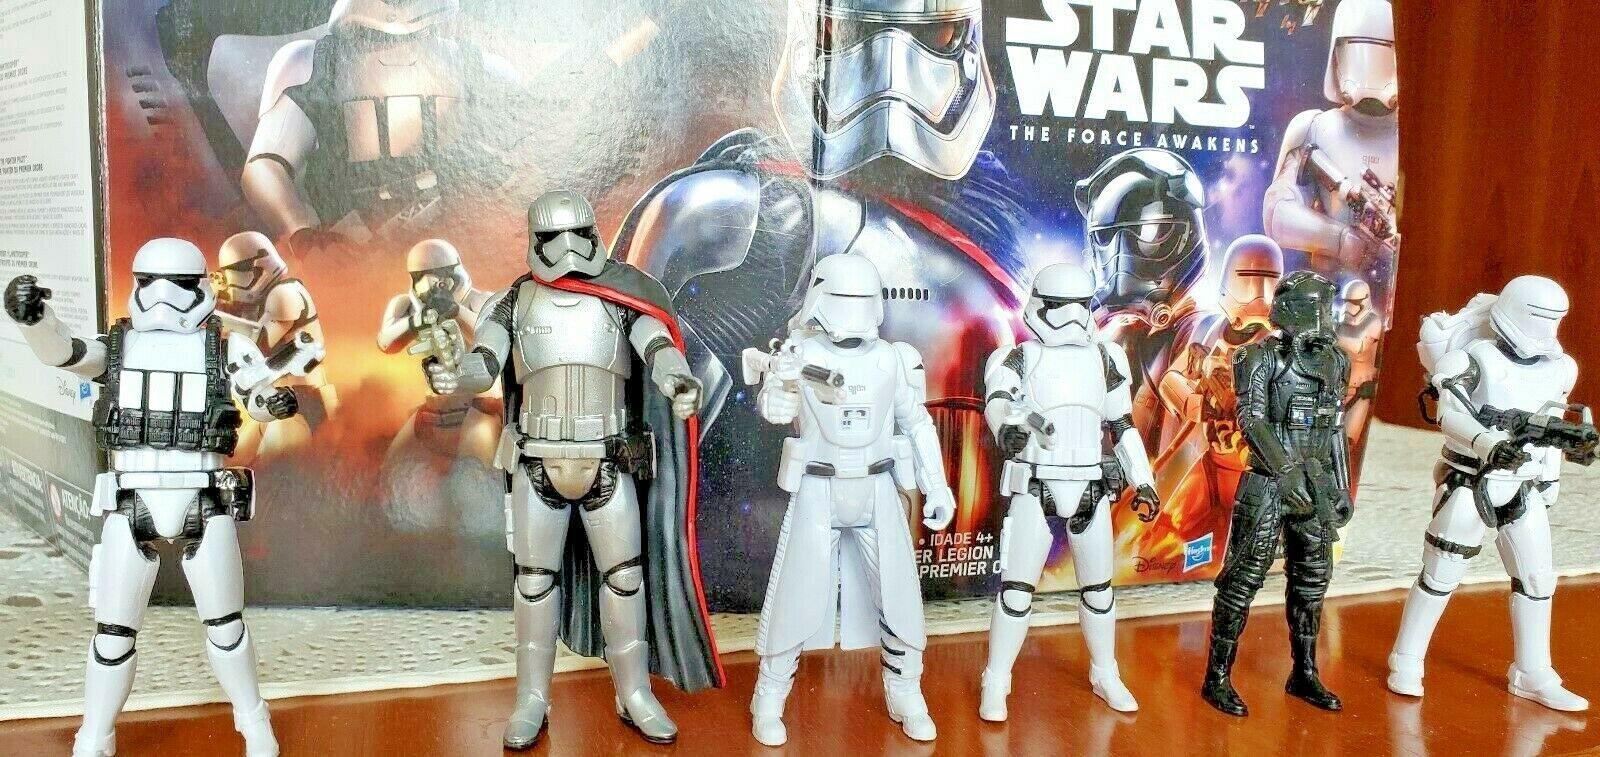 Star Wars - The Force Awakens - First Order Legion Set